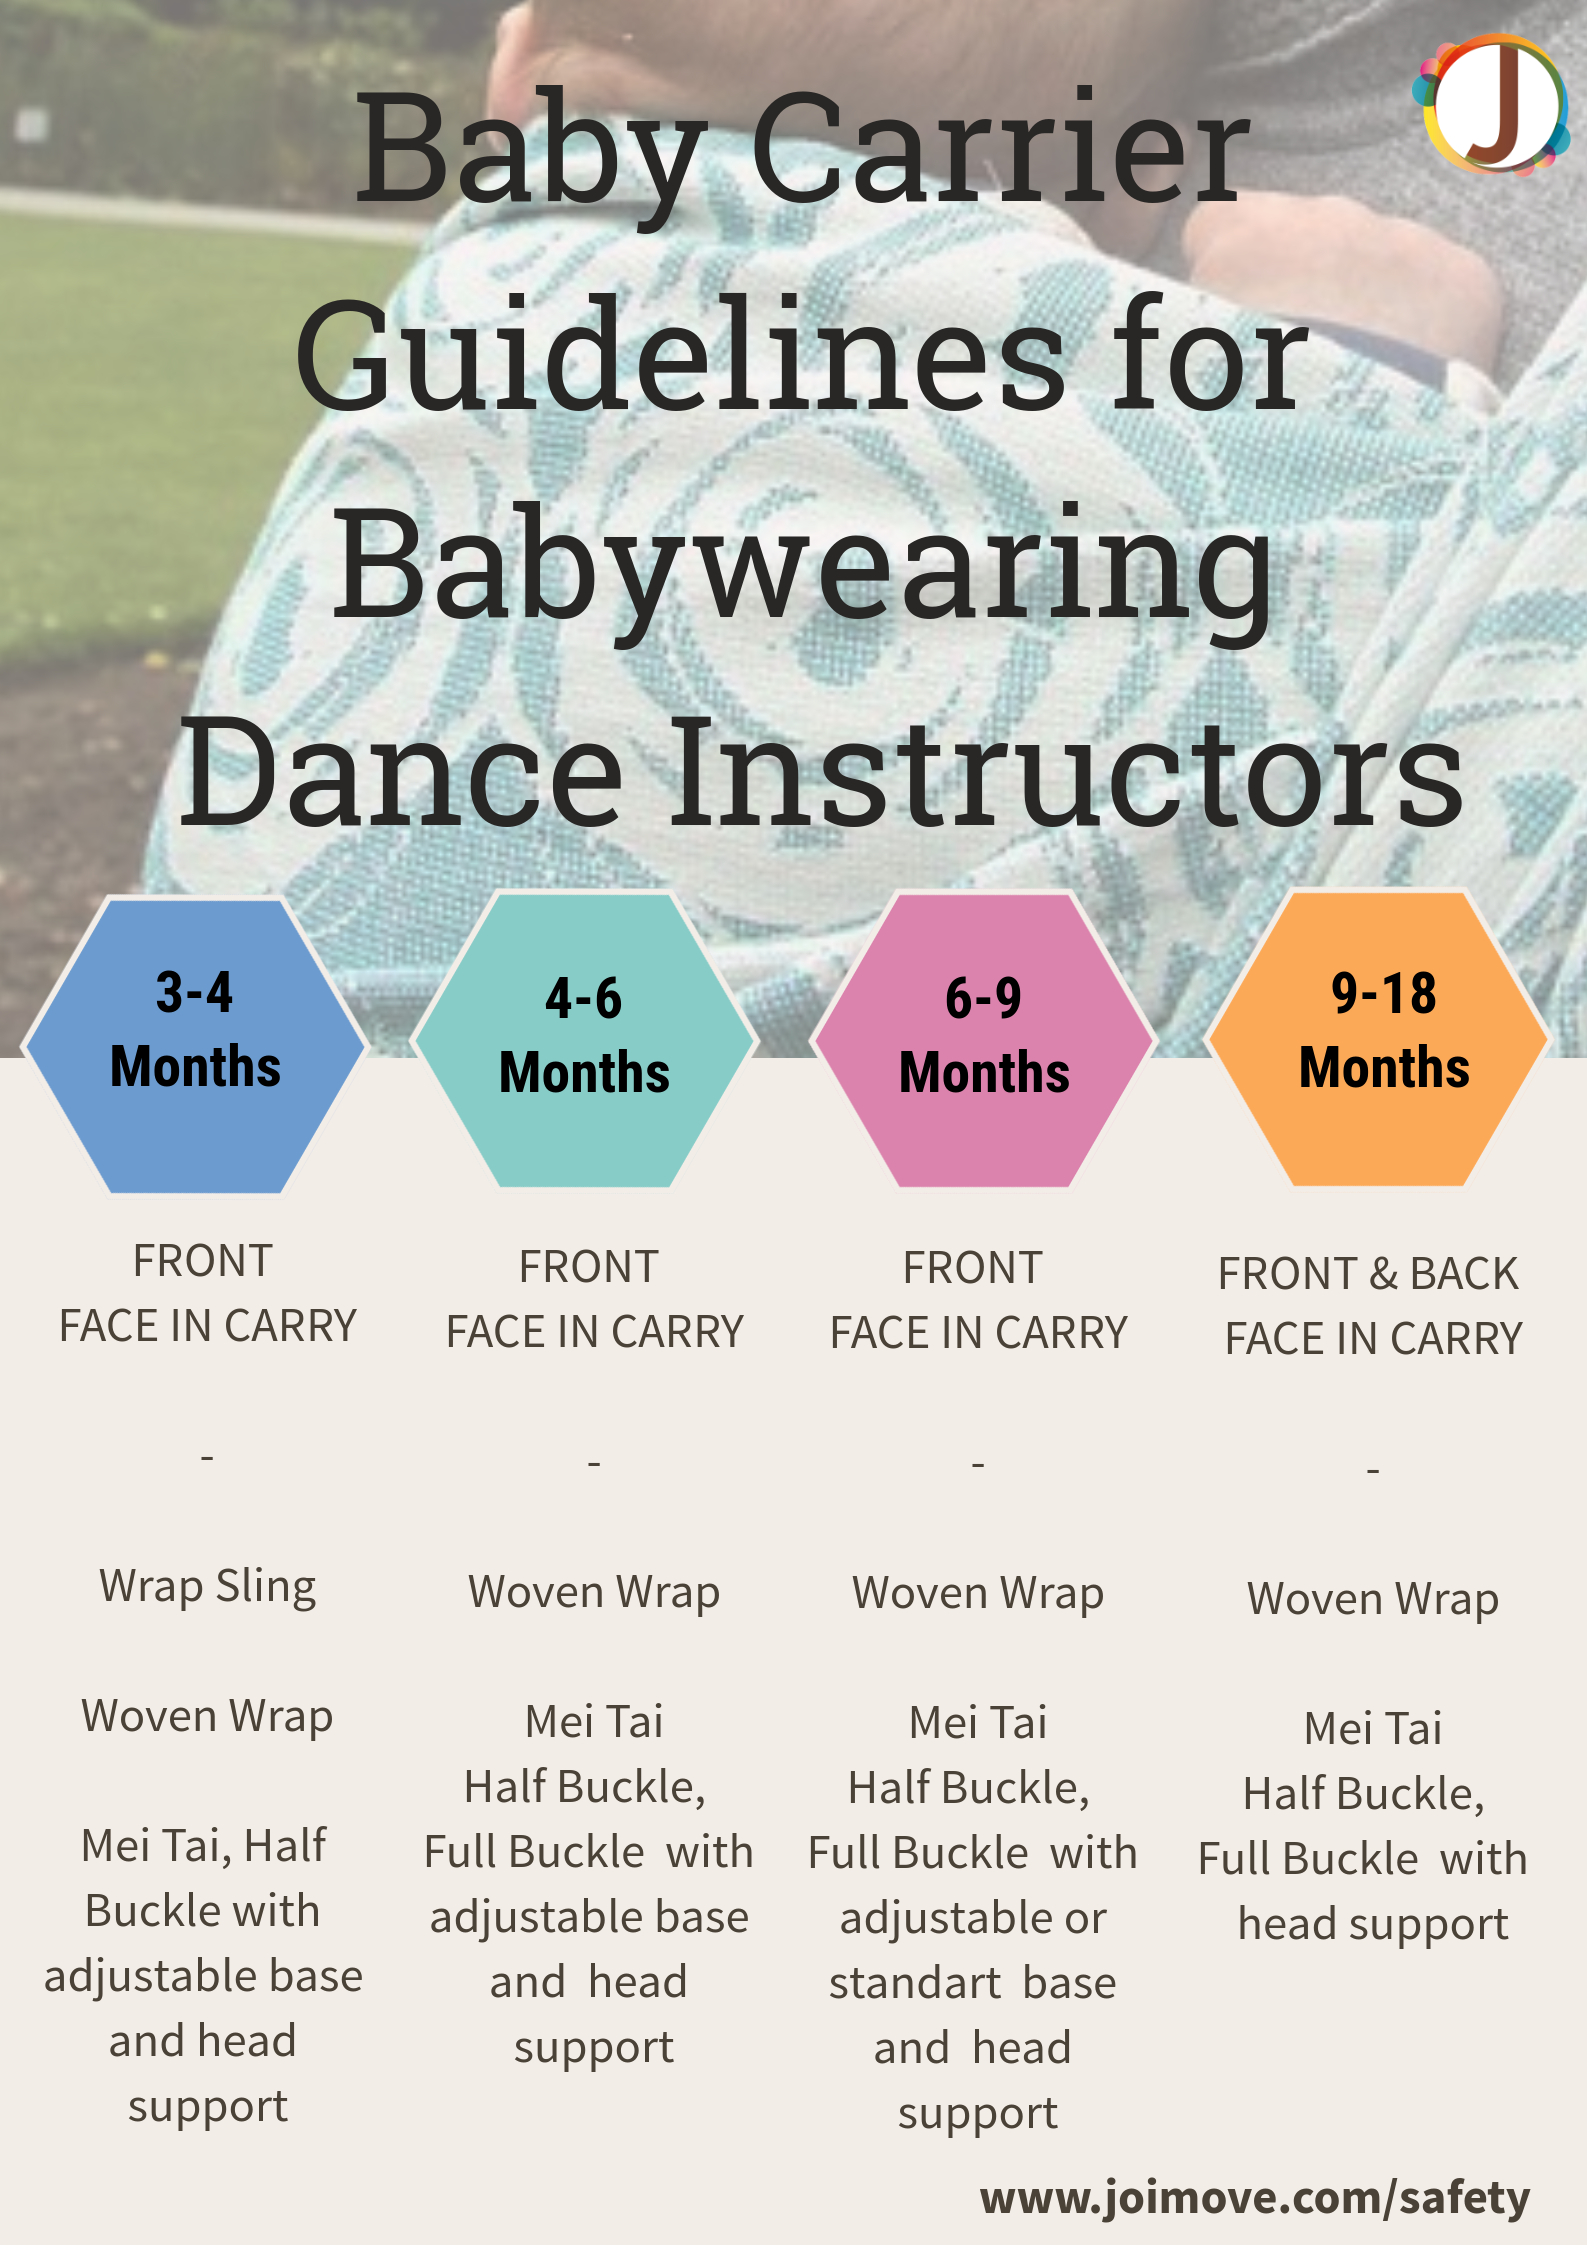 8405c2fefb7 Safety Library - Babywearing Dance Safety Resources   Joimove